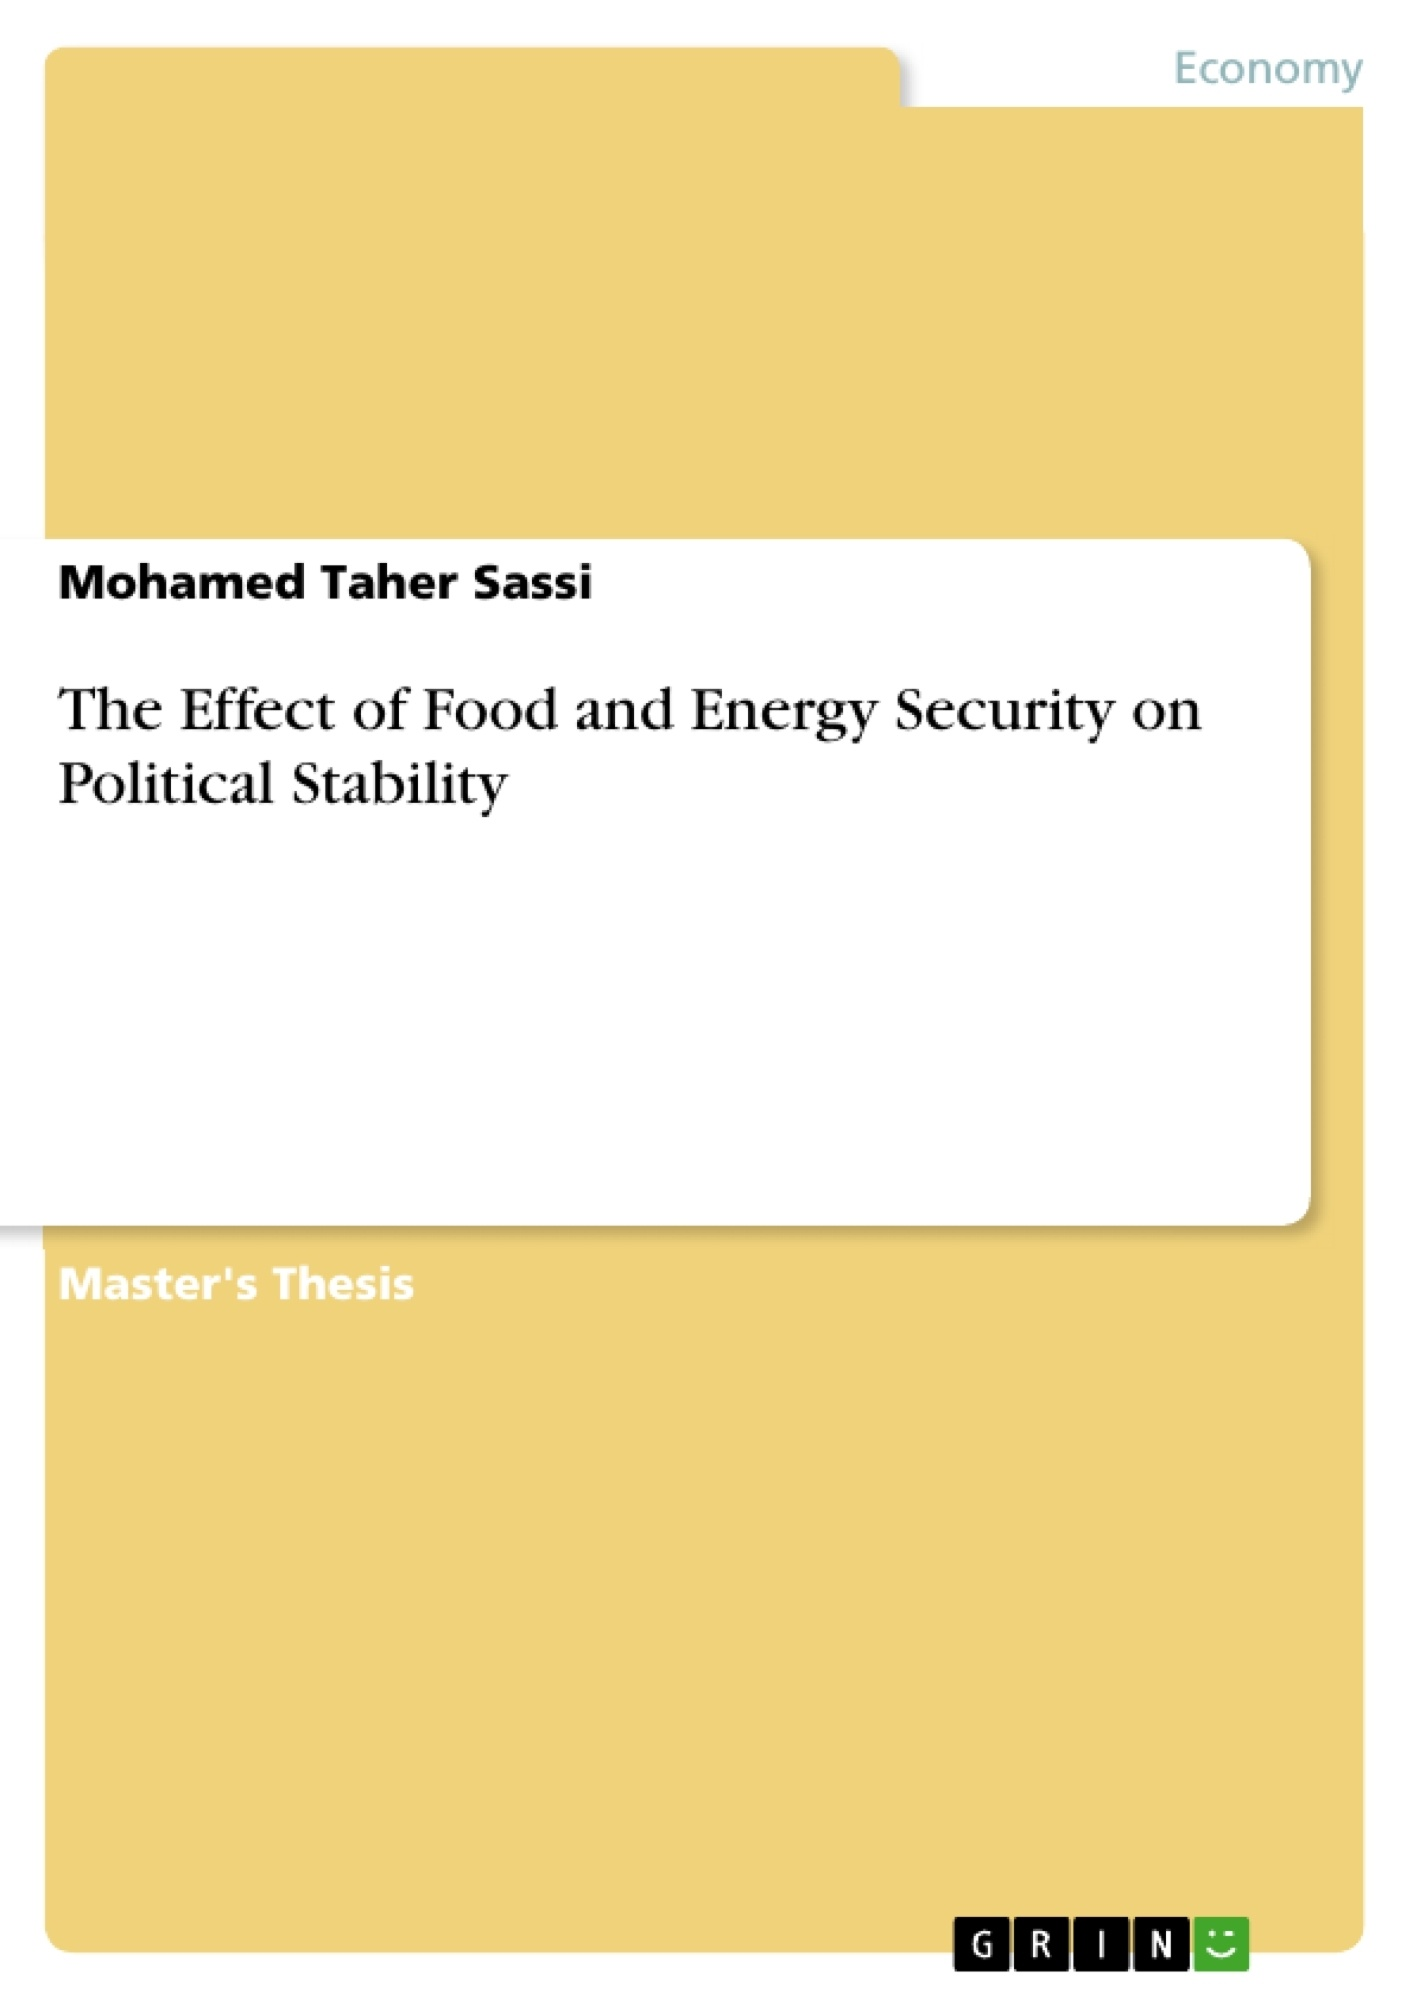 Title: The Effect of Food and Energy Security on Political Stability